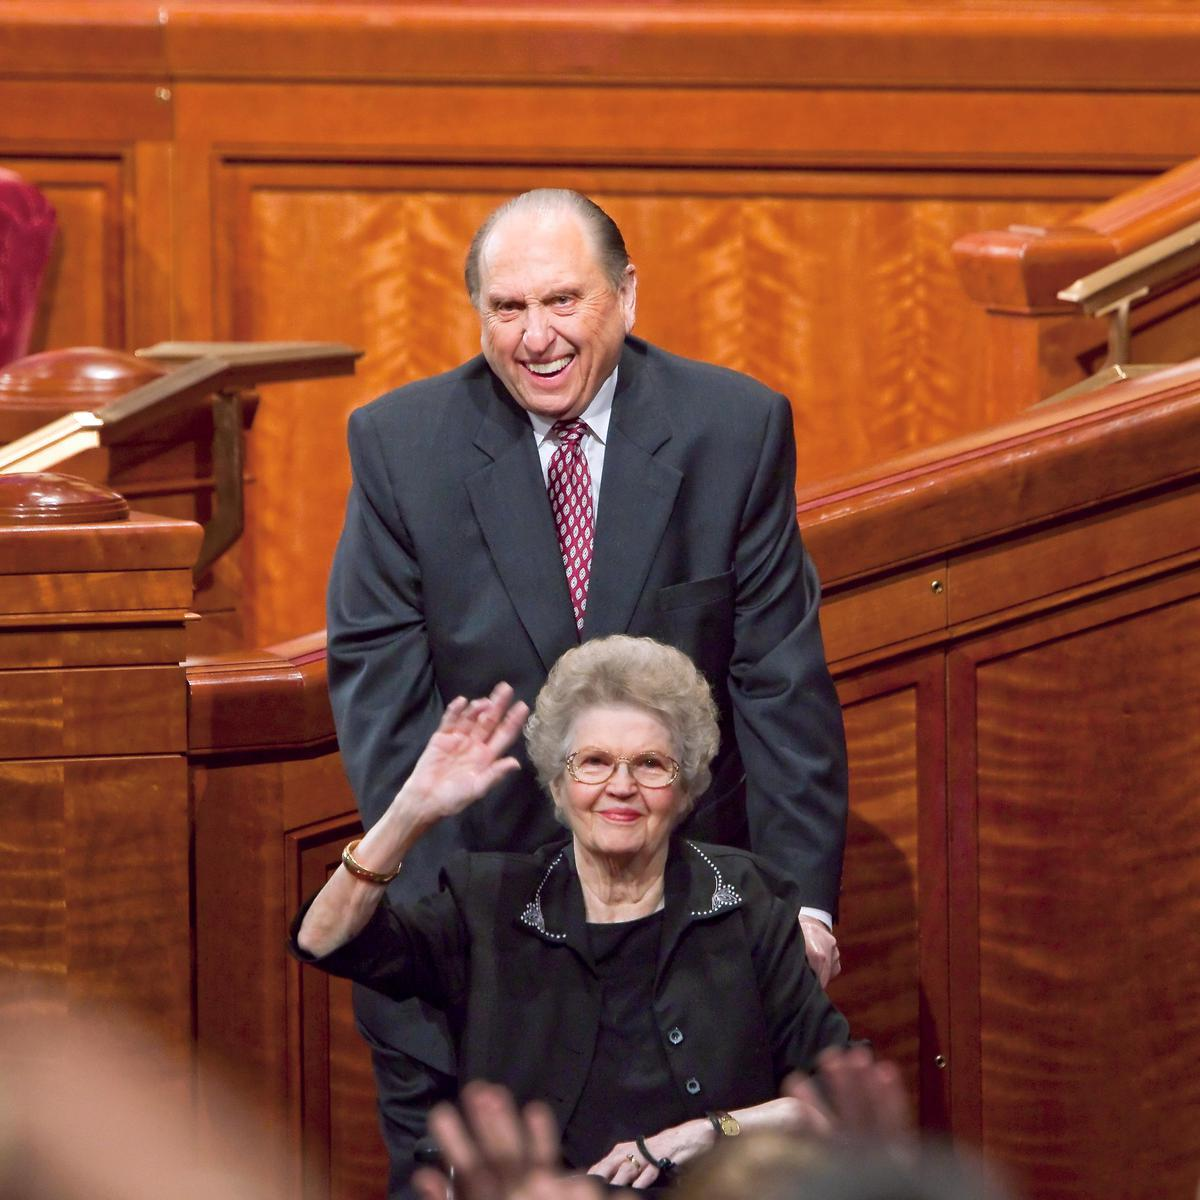 president-monson-with-wife-wheelchair